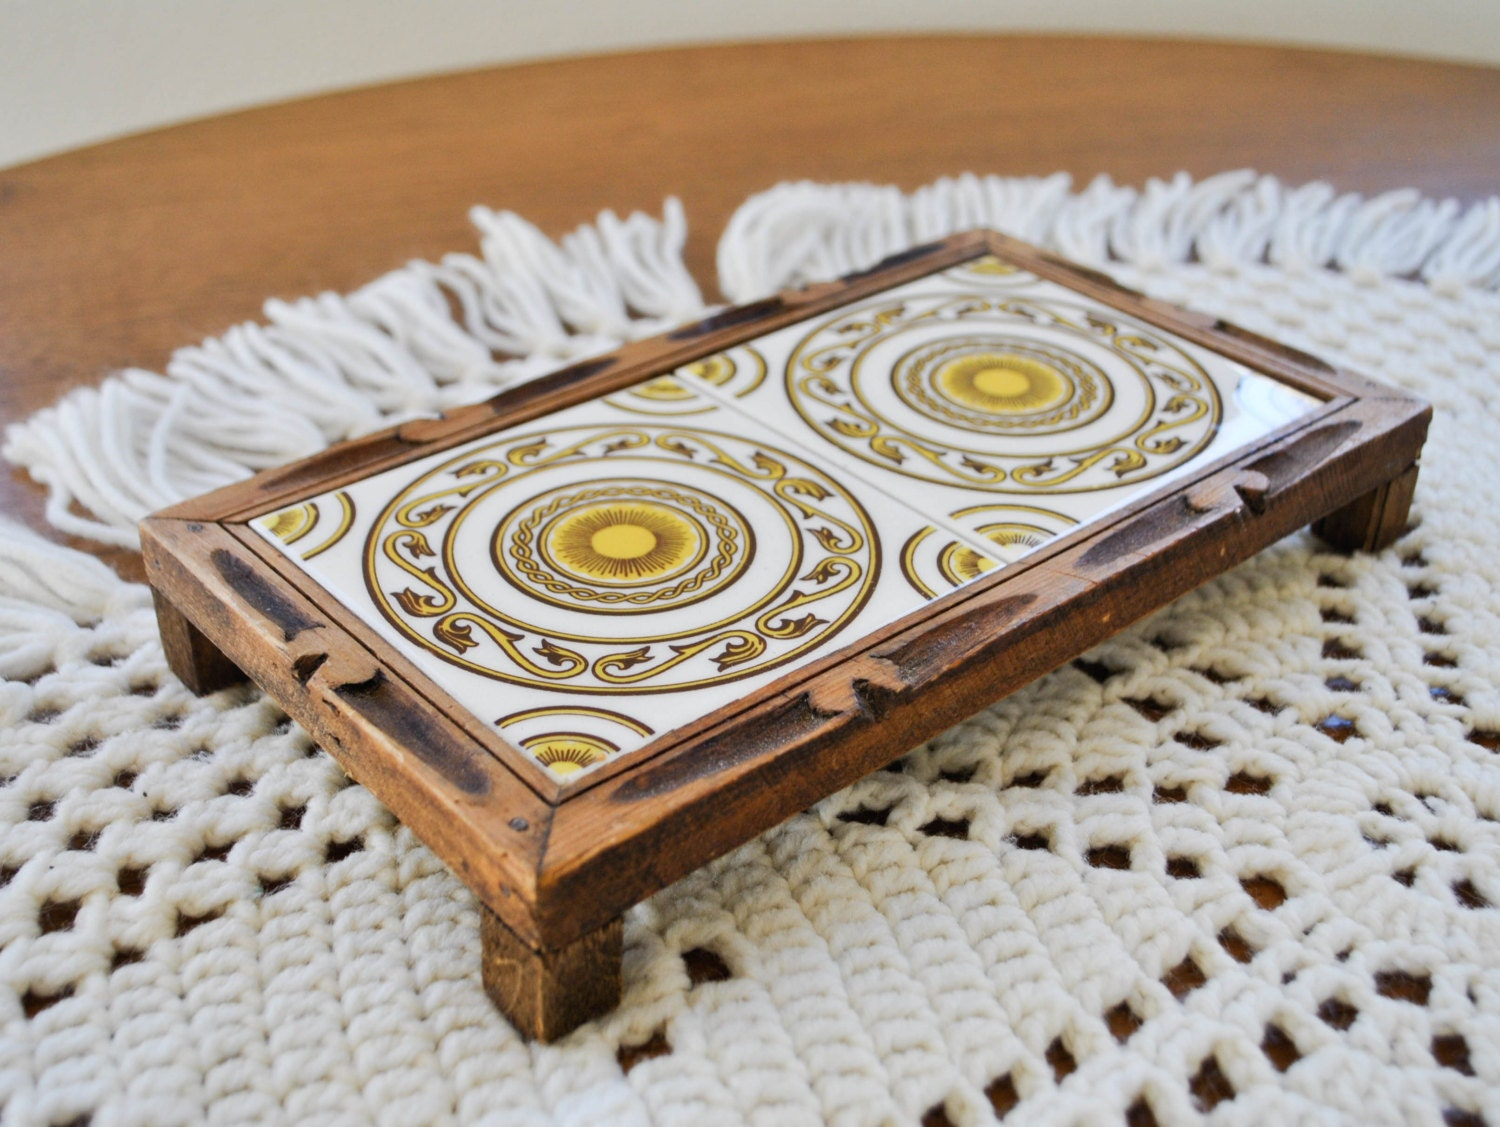 Wood Carved Ceramic Tile Trivet